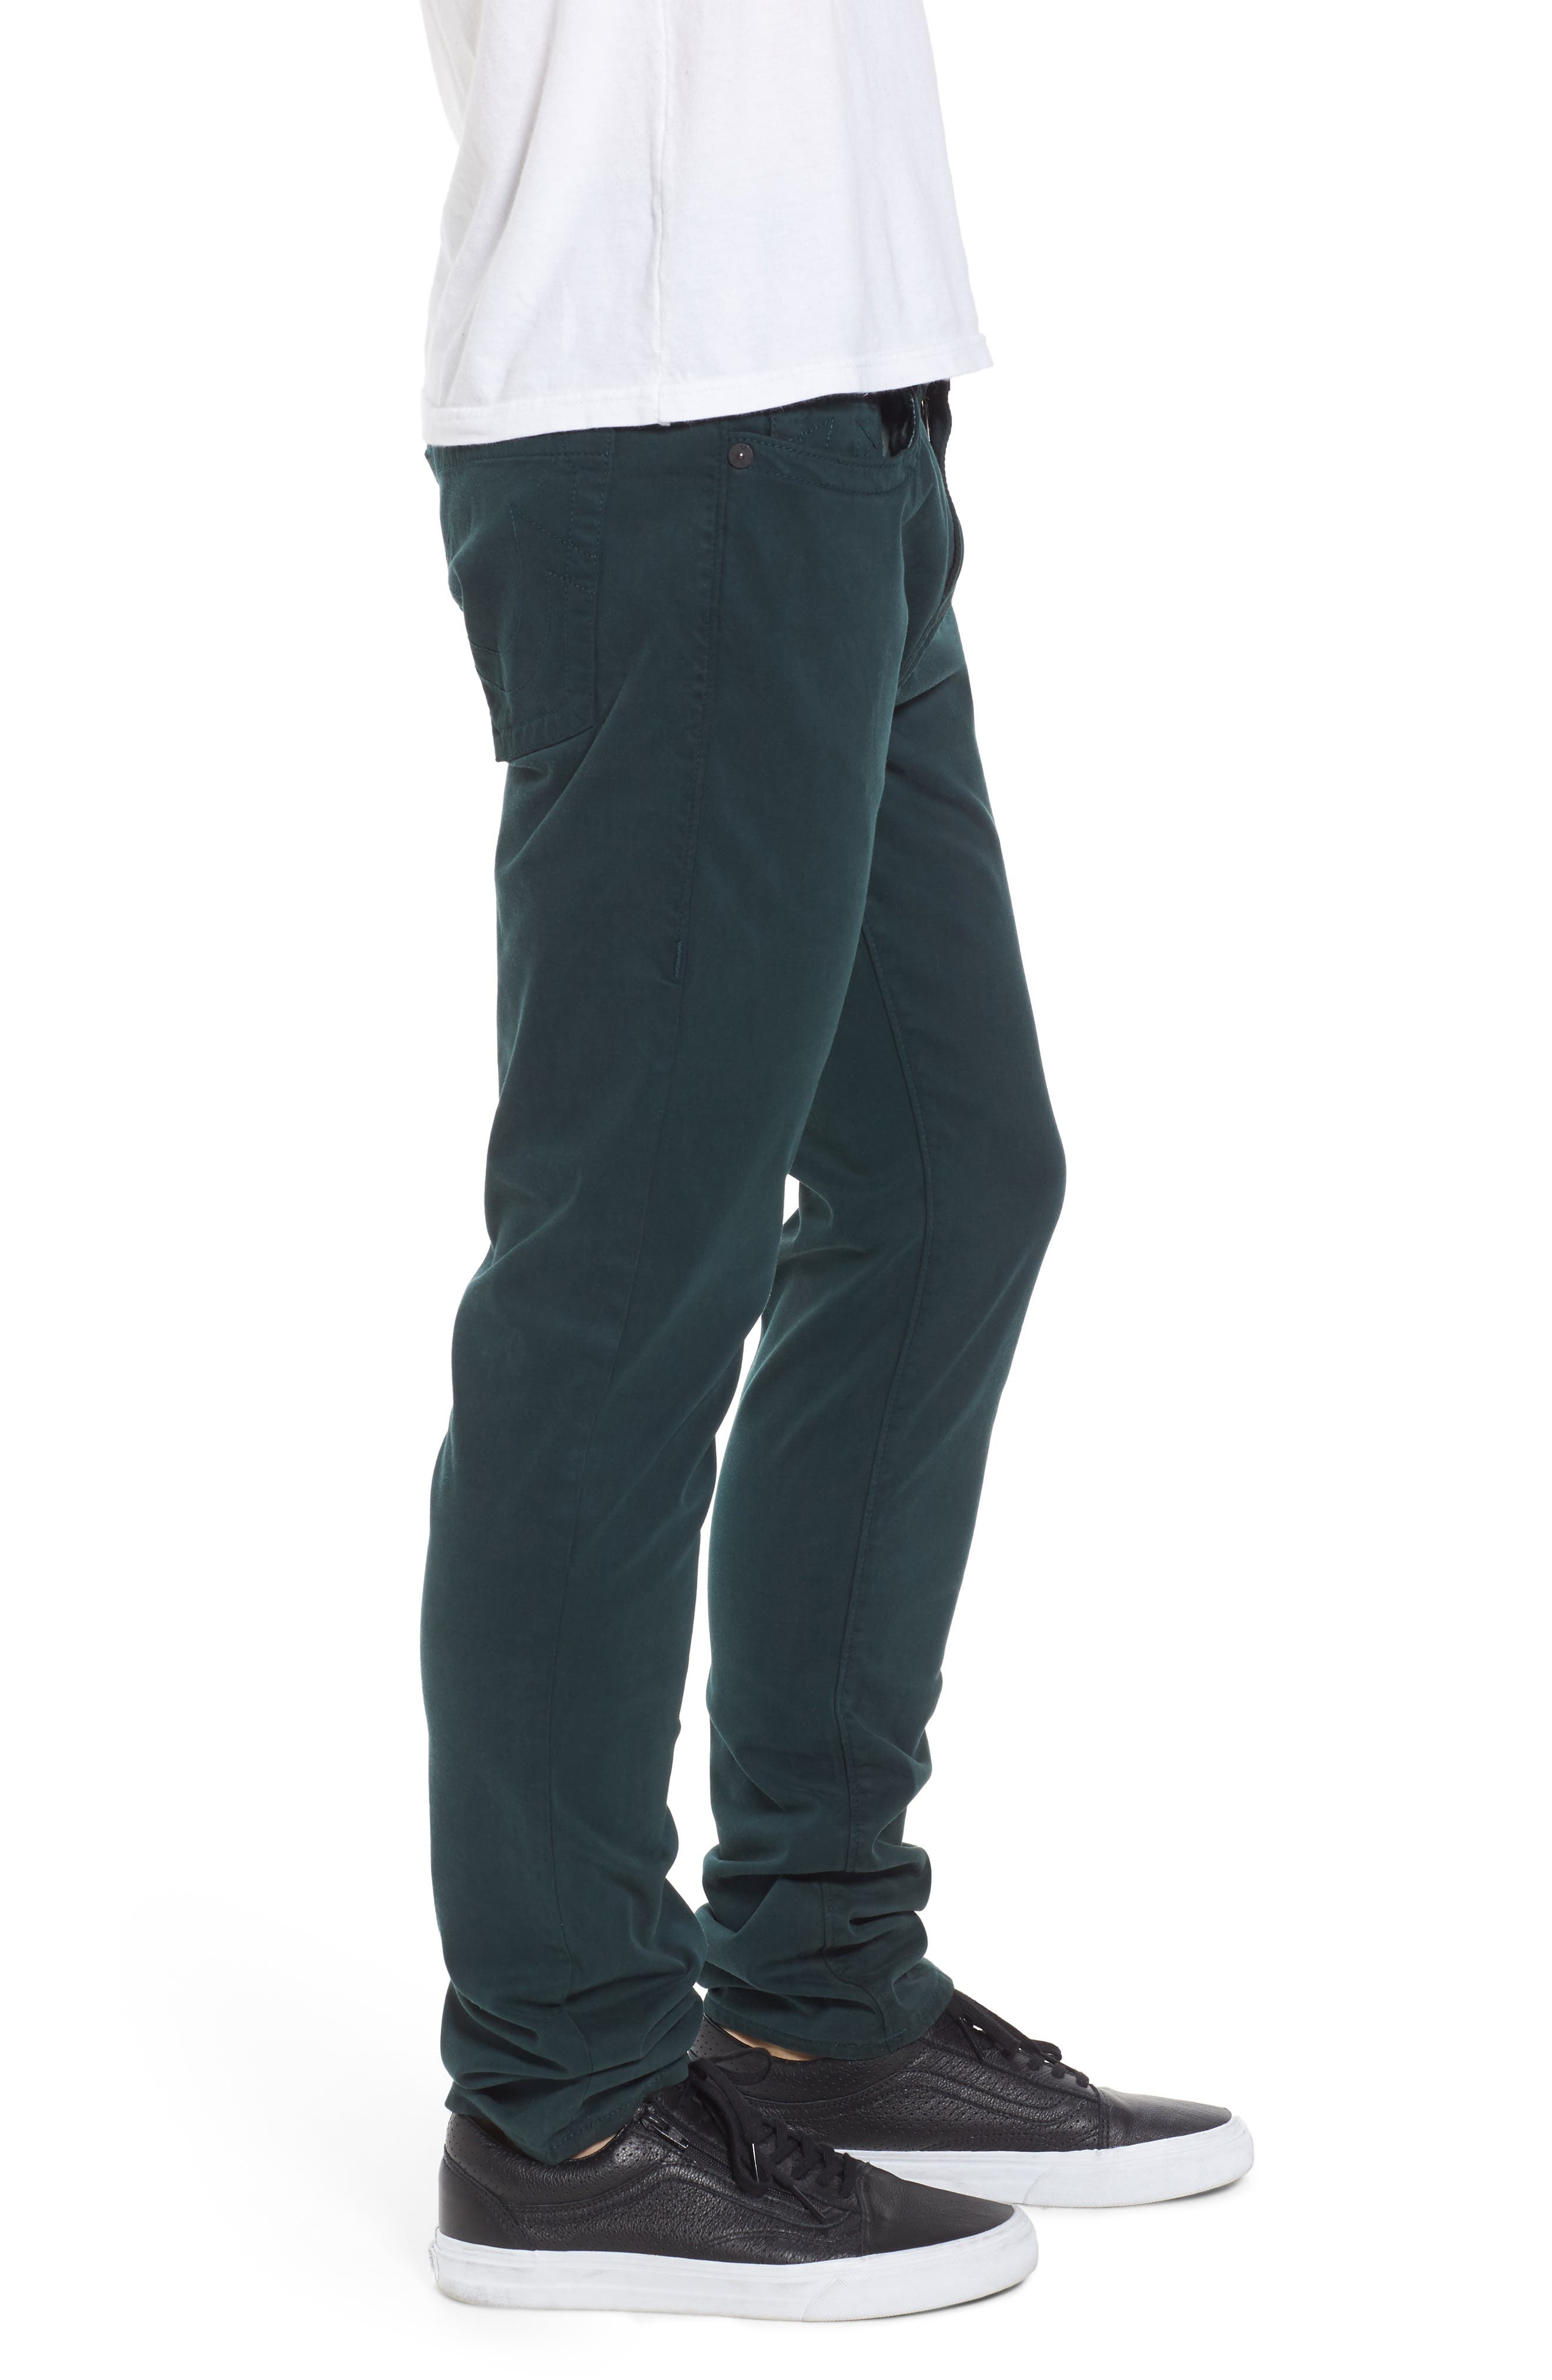 Rocco Skinny Fit Jeans,                             Alternate thumbnail 3, color,                             Hunter Green